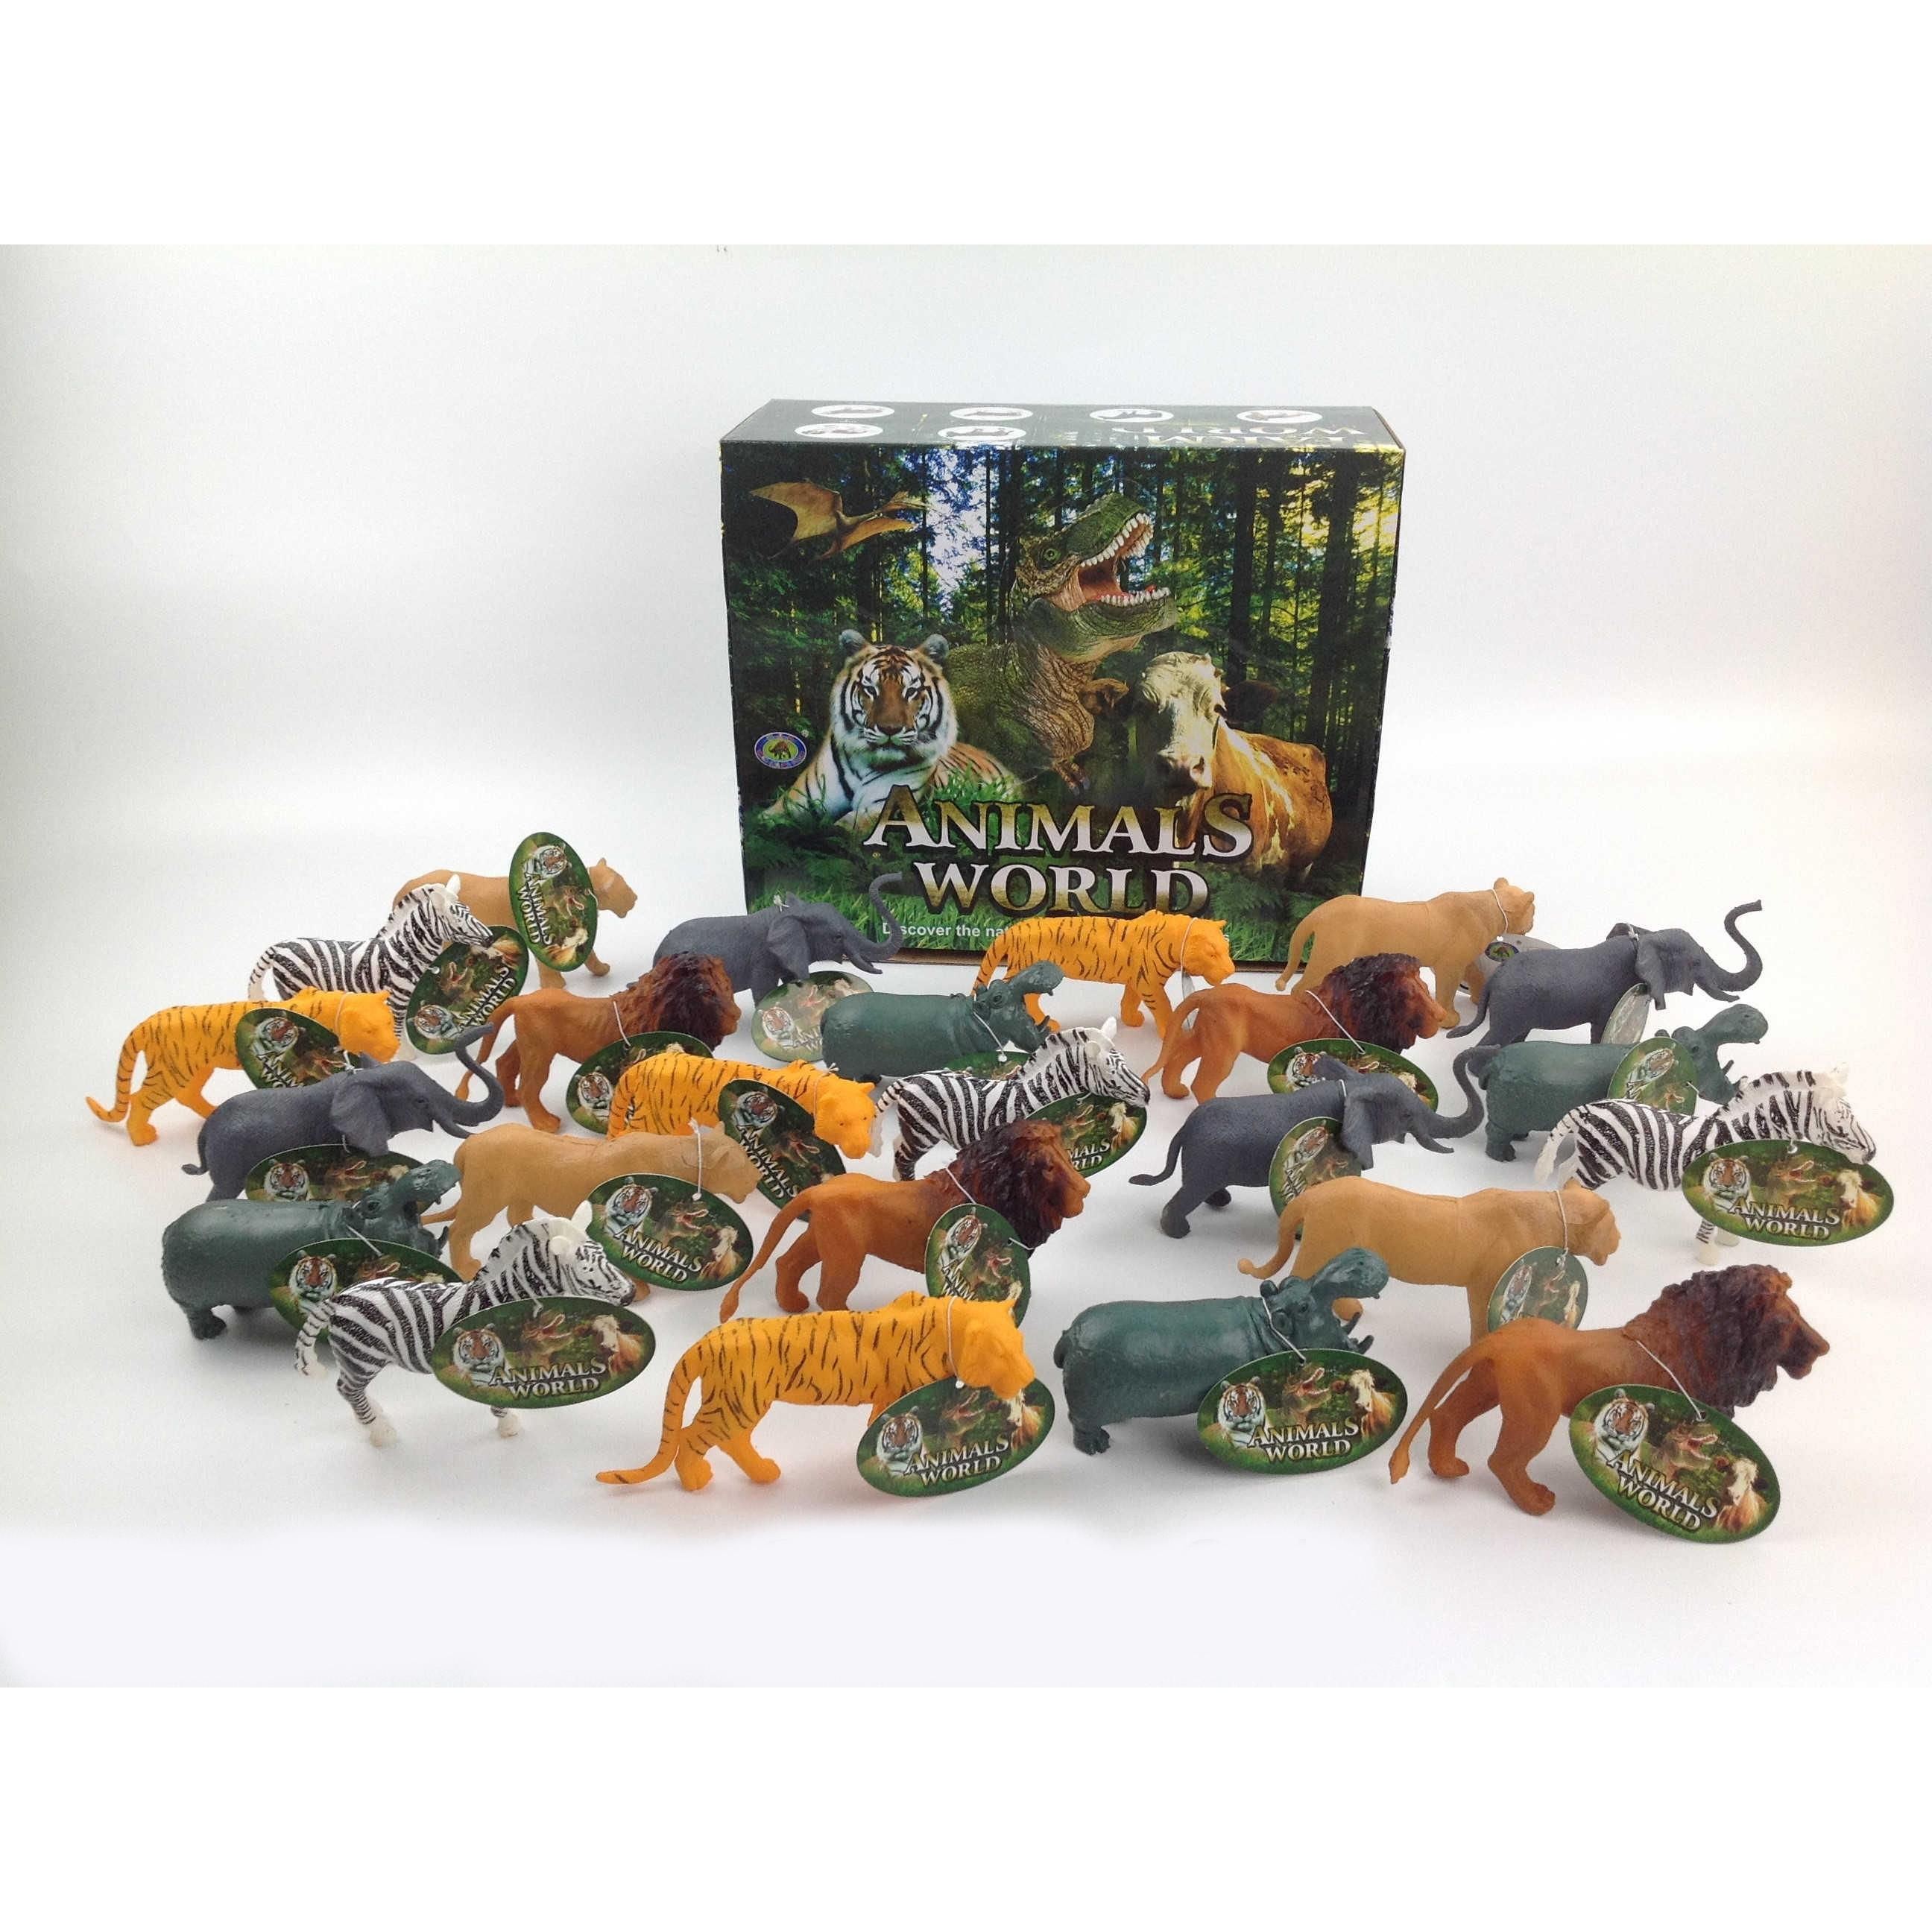 Display c/ 24 Animais Selvagens